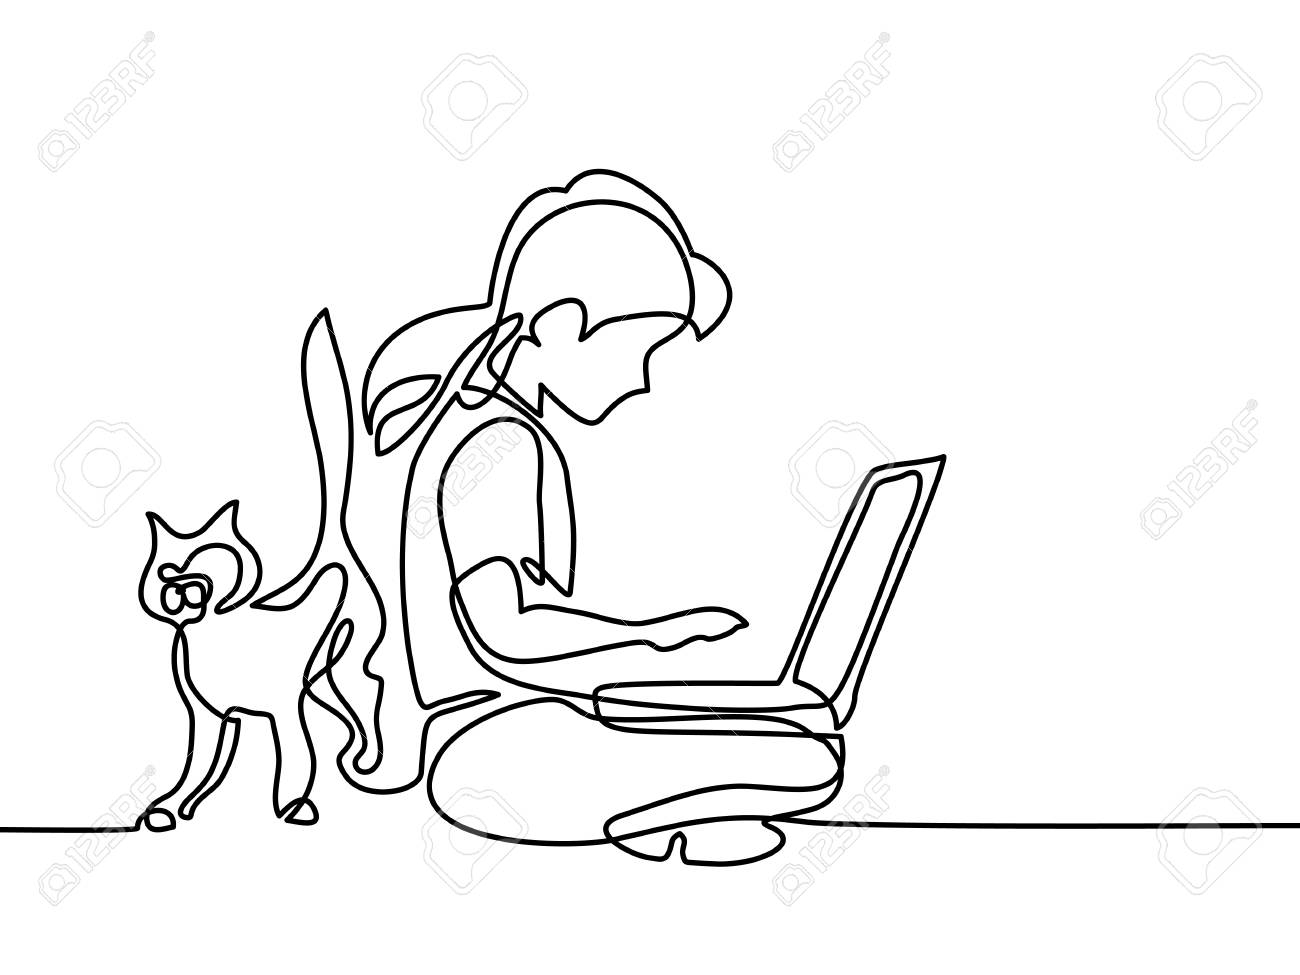 Girl studing with notebookand cat walking near. Back to school concept. Continuous line drawing. Vector illustration on white background - 82927229